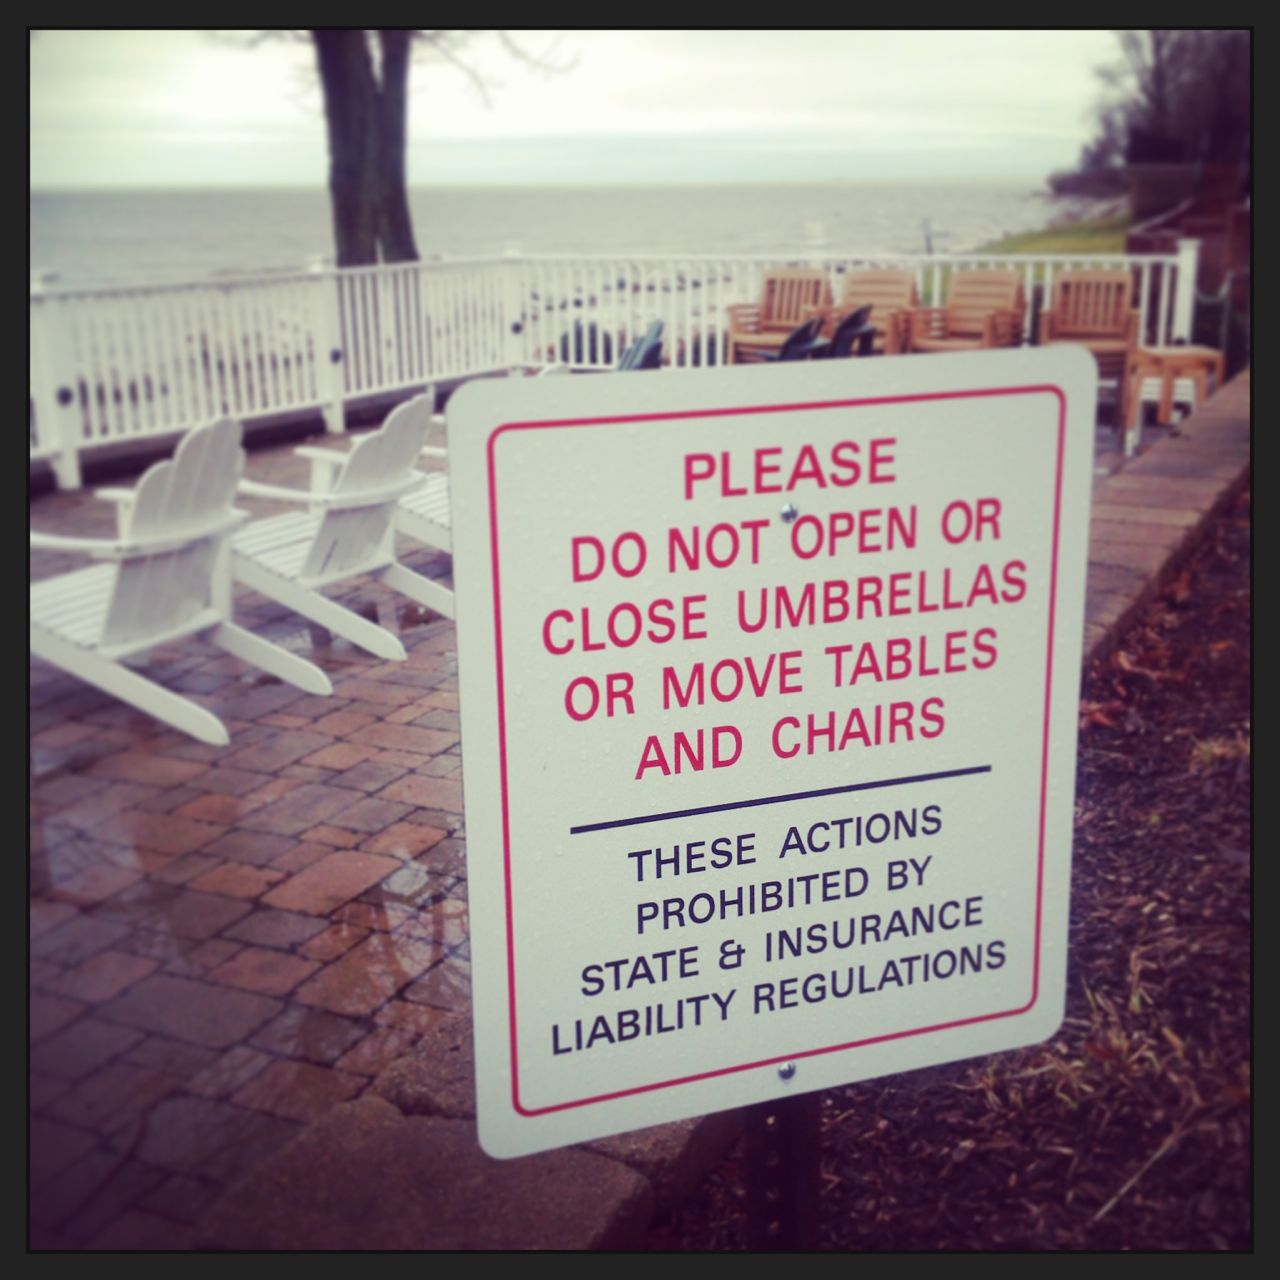 We took this photo in Geneva… and I find it a bit tough to believe. Seriously? It's illegal to move chairs or close umbrellas?